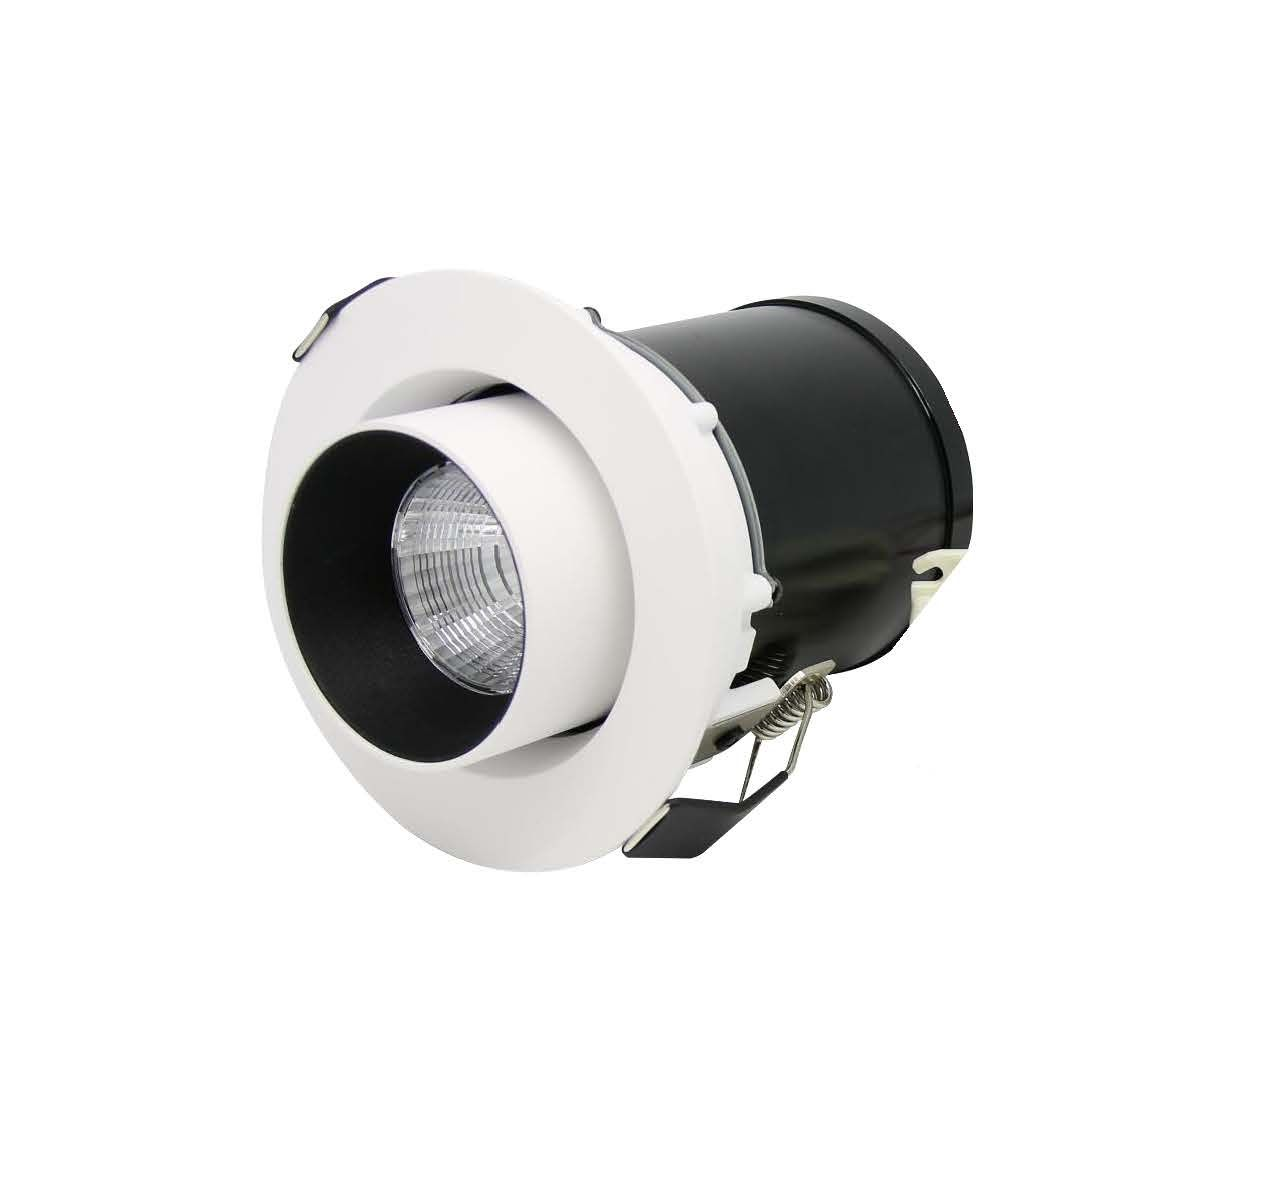 DD recessed adjustable downlight